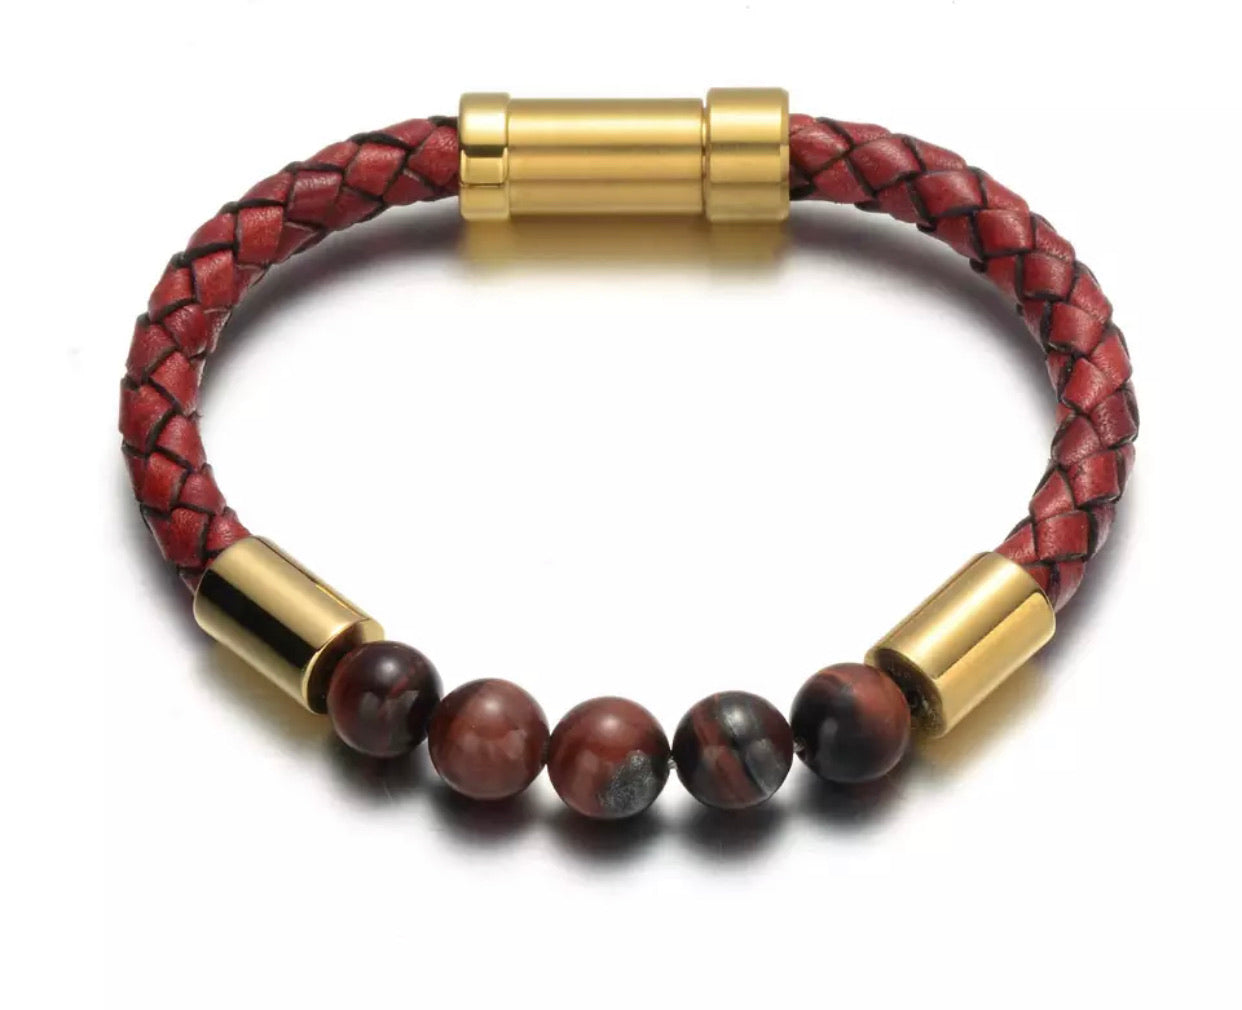 KC CROWN's 'Flat Earth' Jasper Bracelet